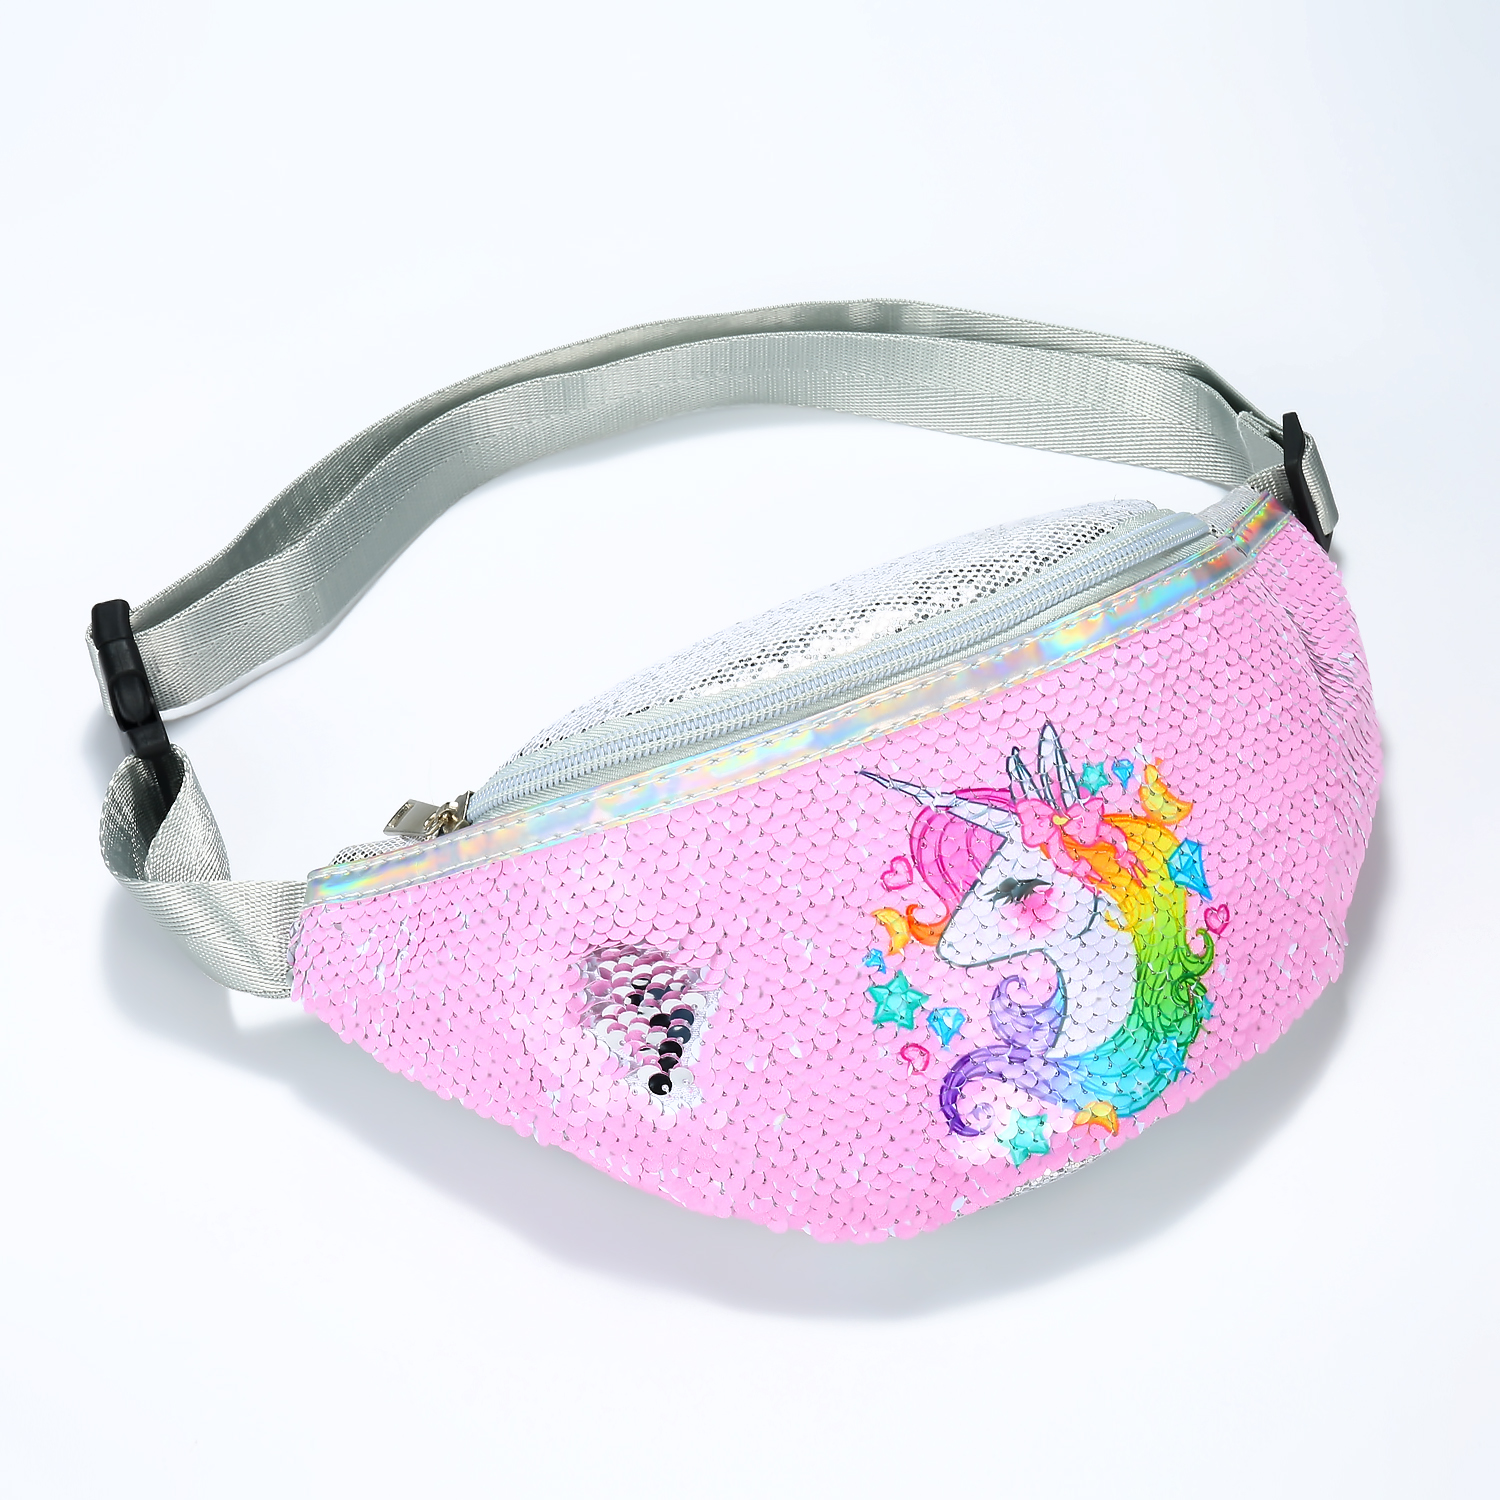 Cartoon Sequins Unicorn Waist Bag For Women Glisten Lovely Pink Fanny Packs Girls Shoulder Bag Travelling Mobile Phone Bags 2019